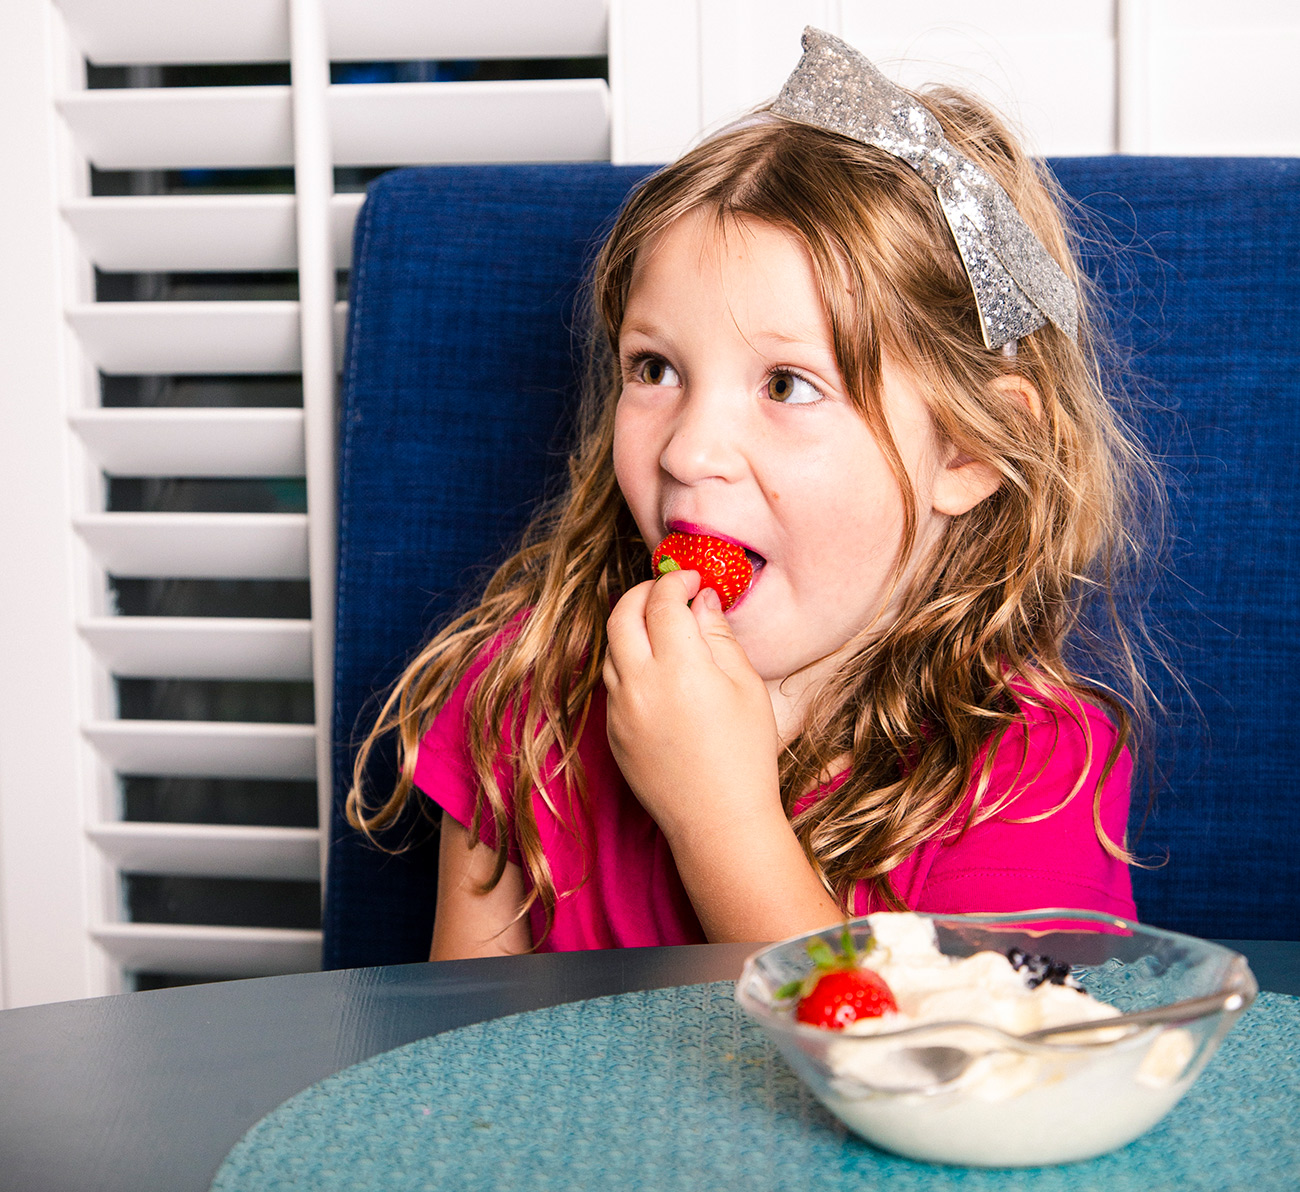 A young girl wearing a pink shirt eats a strawberry with whipped cream.